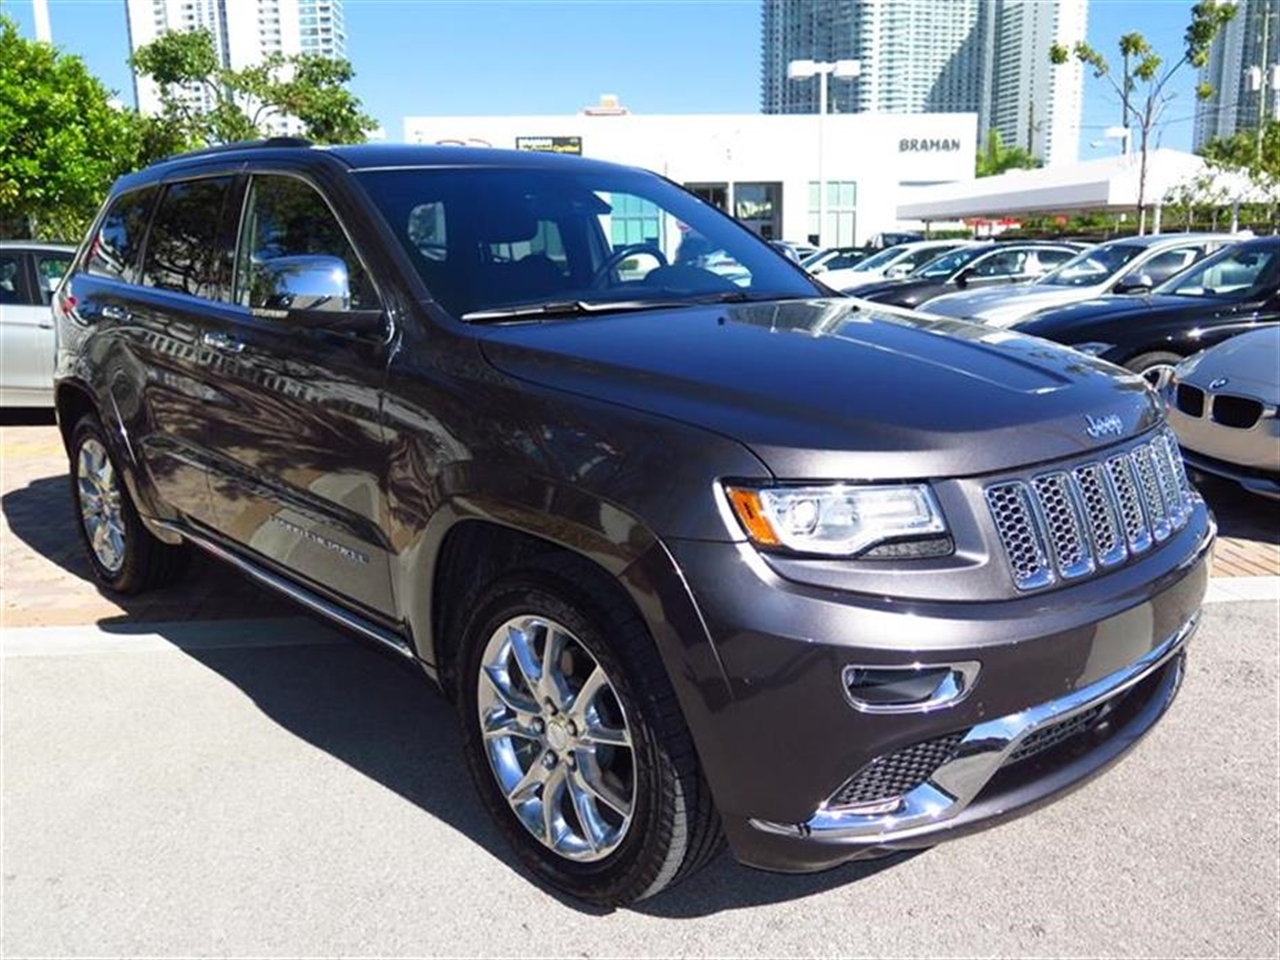 2014 JEEP GRAND CHEROKEE 4WD 4dr Summit 4839 miles 2 Seatback Storage Pockets 3 12V DC Power Outl